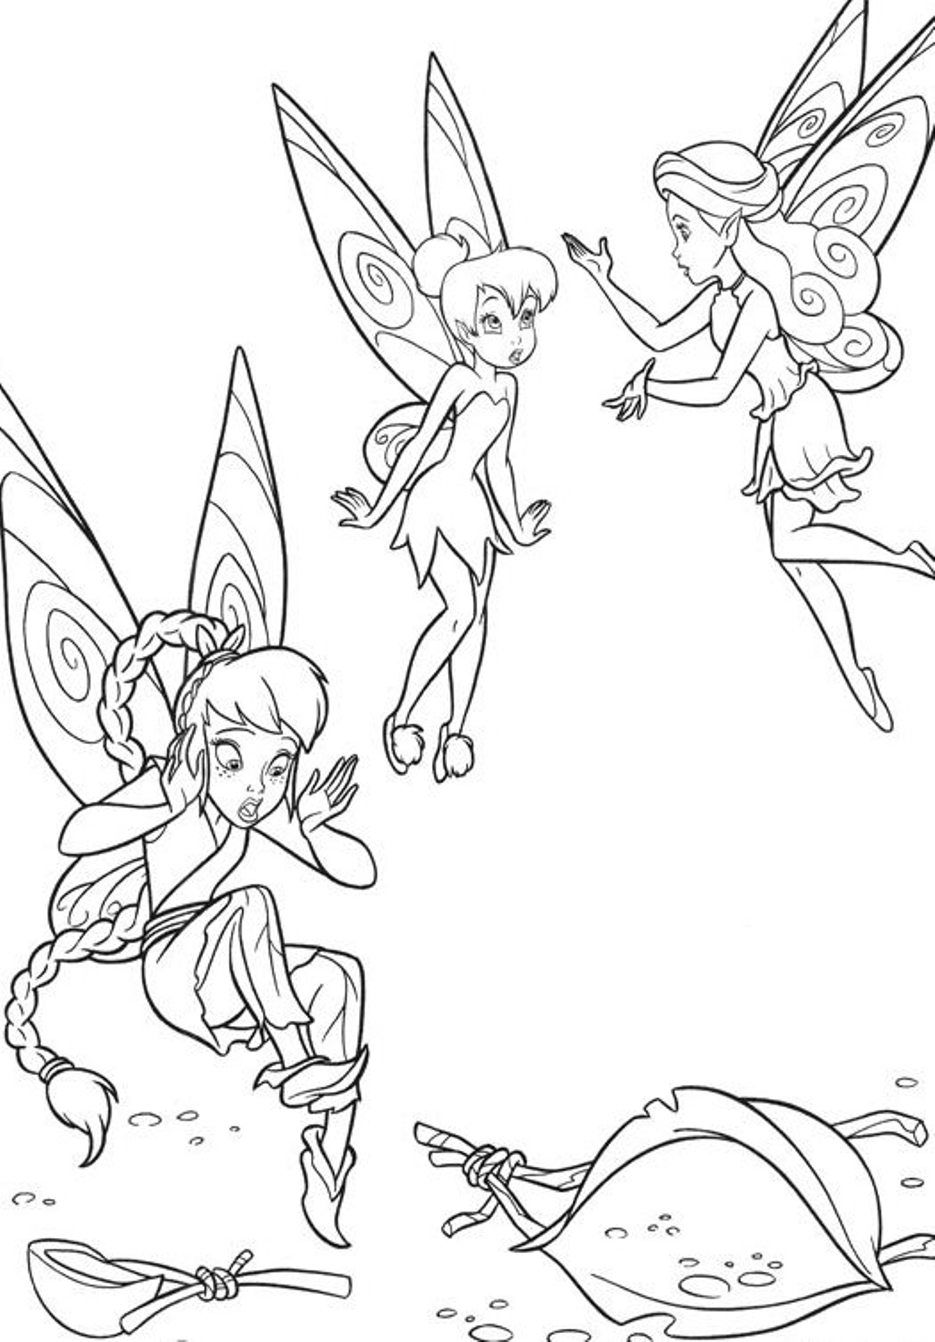 tinkerbell and friends coloring pages tinker bell friends coloring pages coloring pages to friends coloring pages tinkerbell and